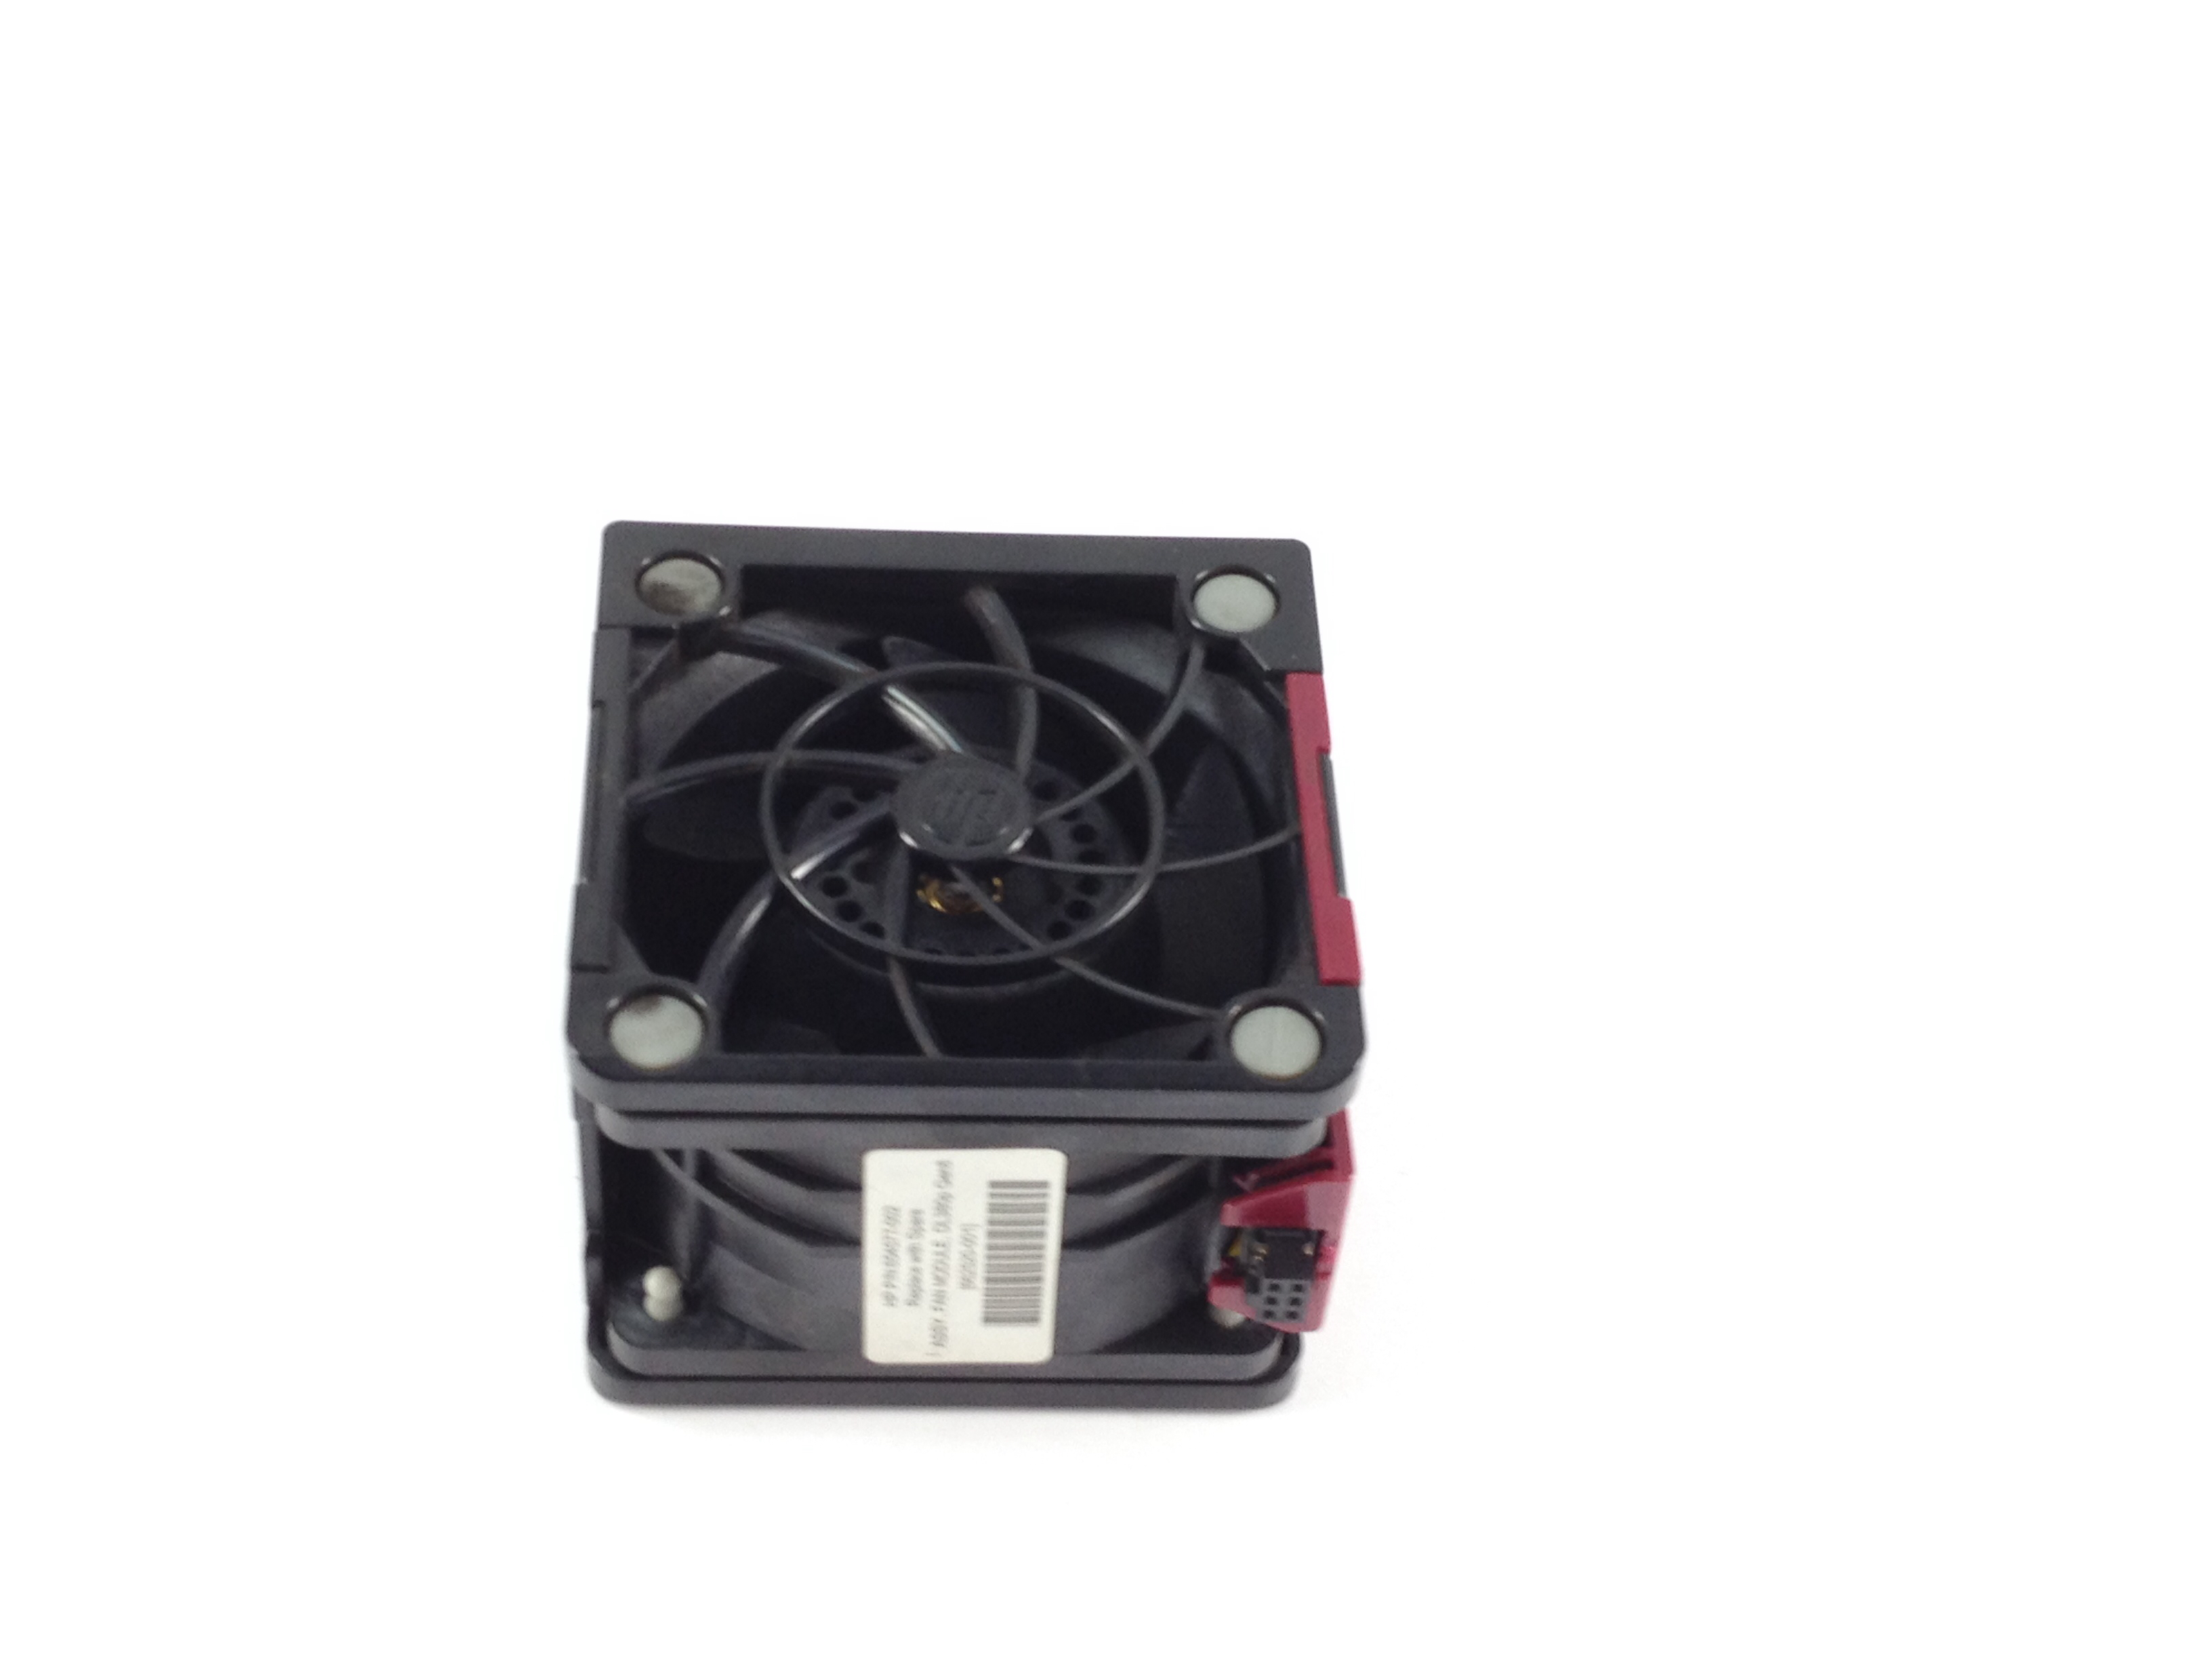 HP DL380 G8 DL380P G8 Server Cooling Fan (662520-001)